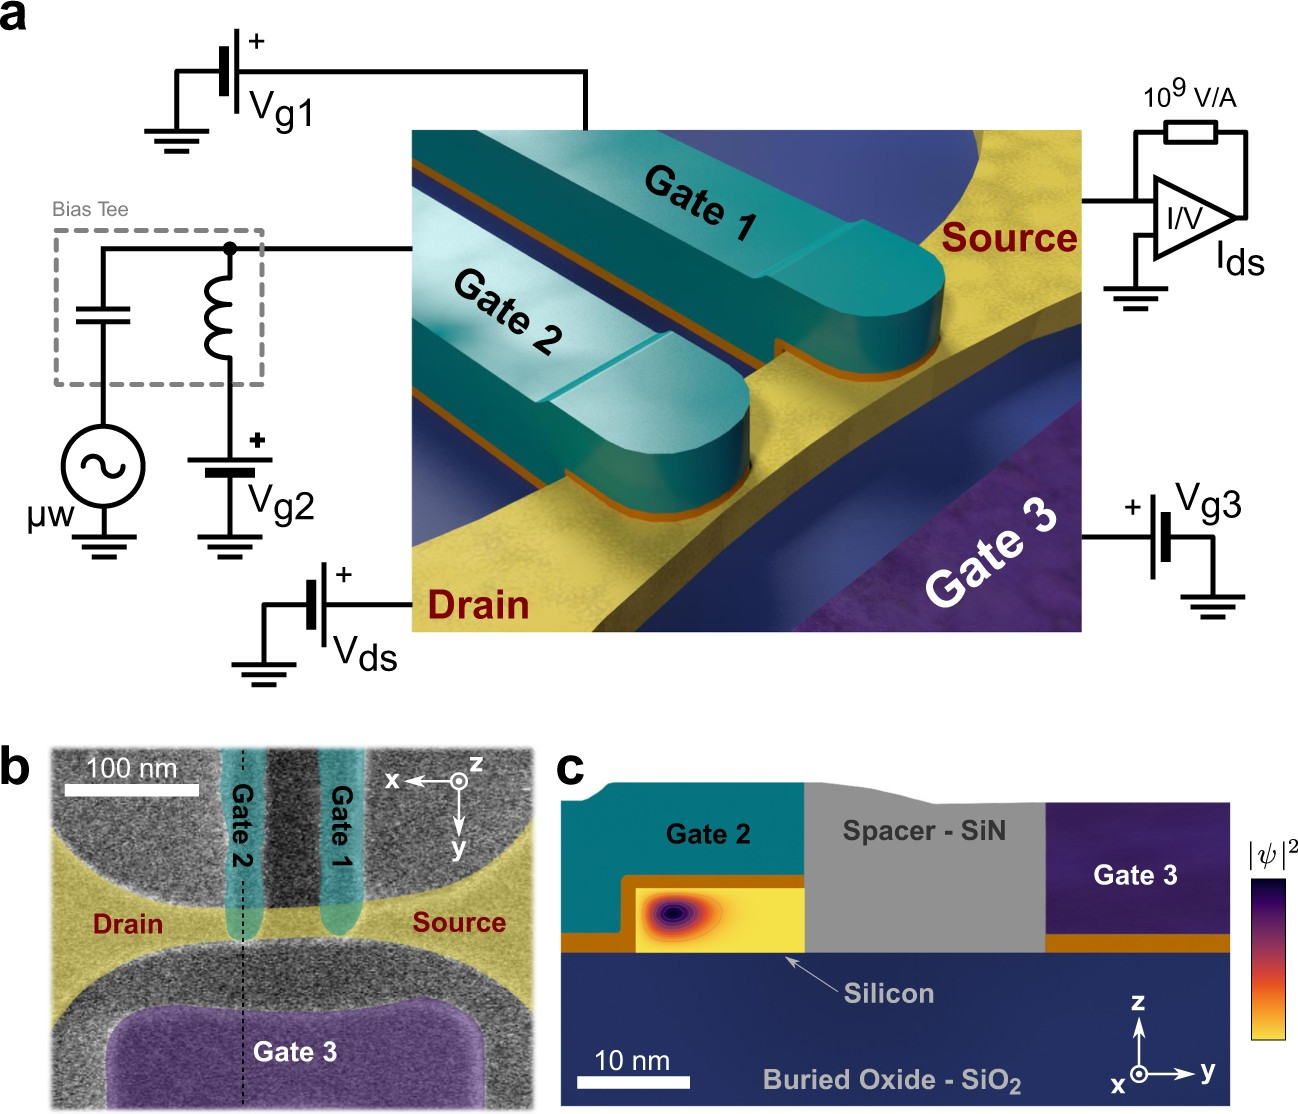 Electrically Driven Electron Spin Resonance Mediated By Spinvalley The Transimpedance Amplifier Author Explains That Following Circuit Spinvalleyorbit Coupling In A Silicon Quantum Dot Npj Information